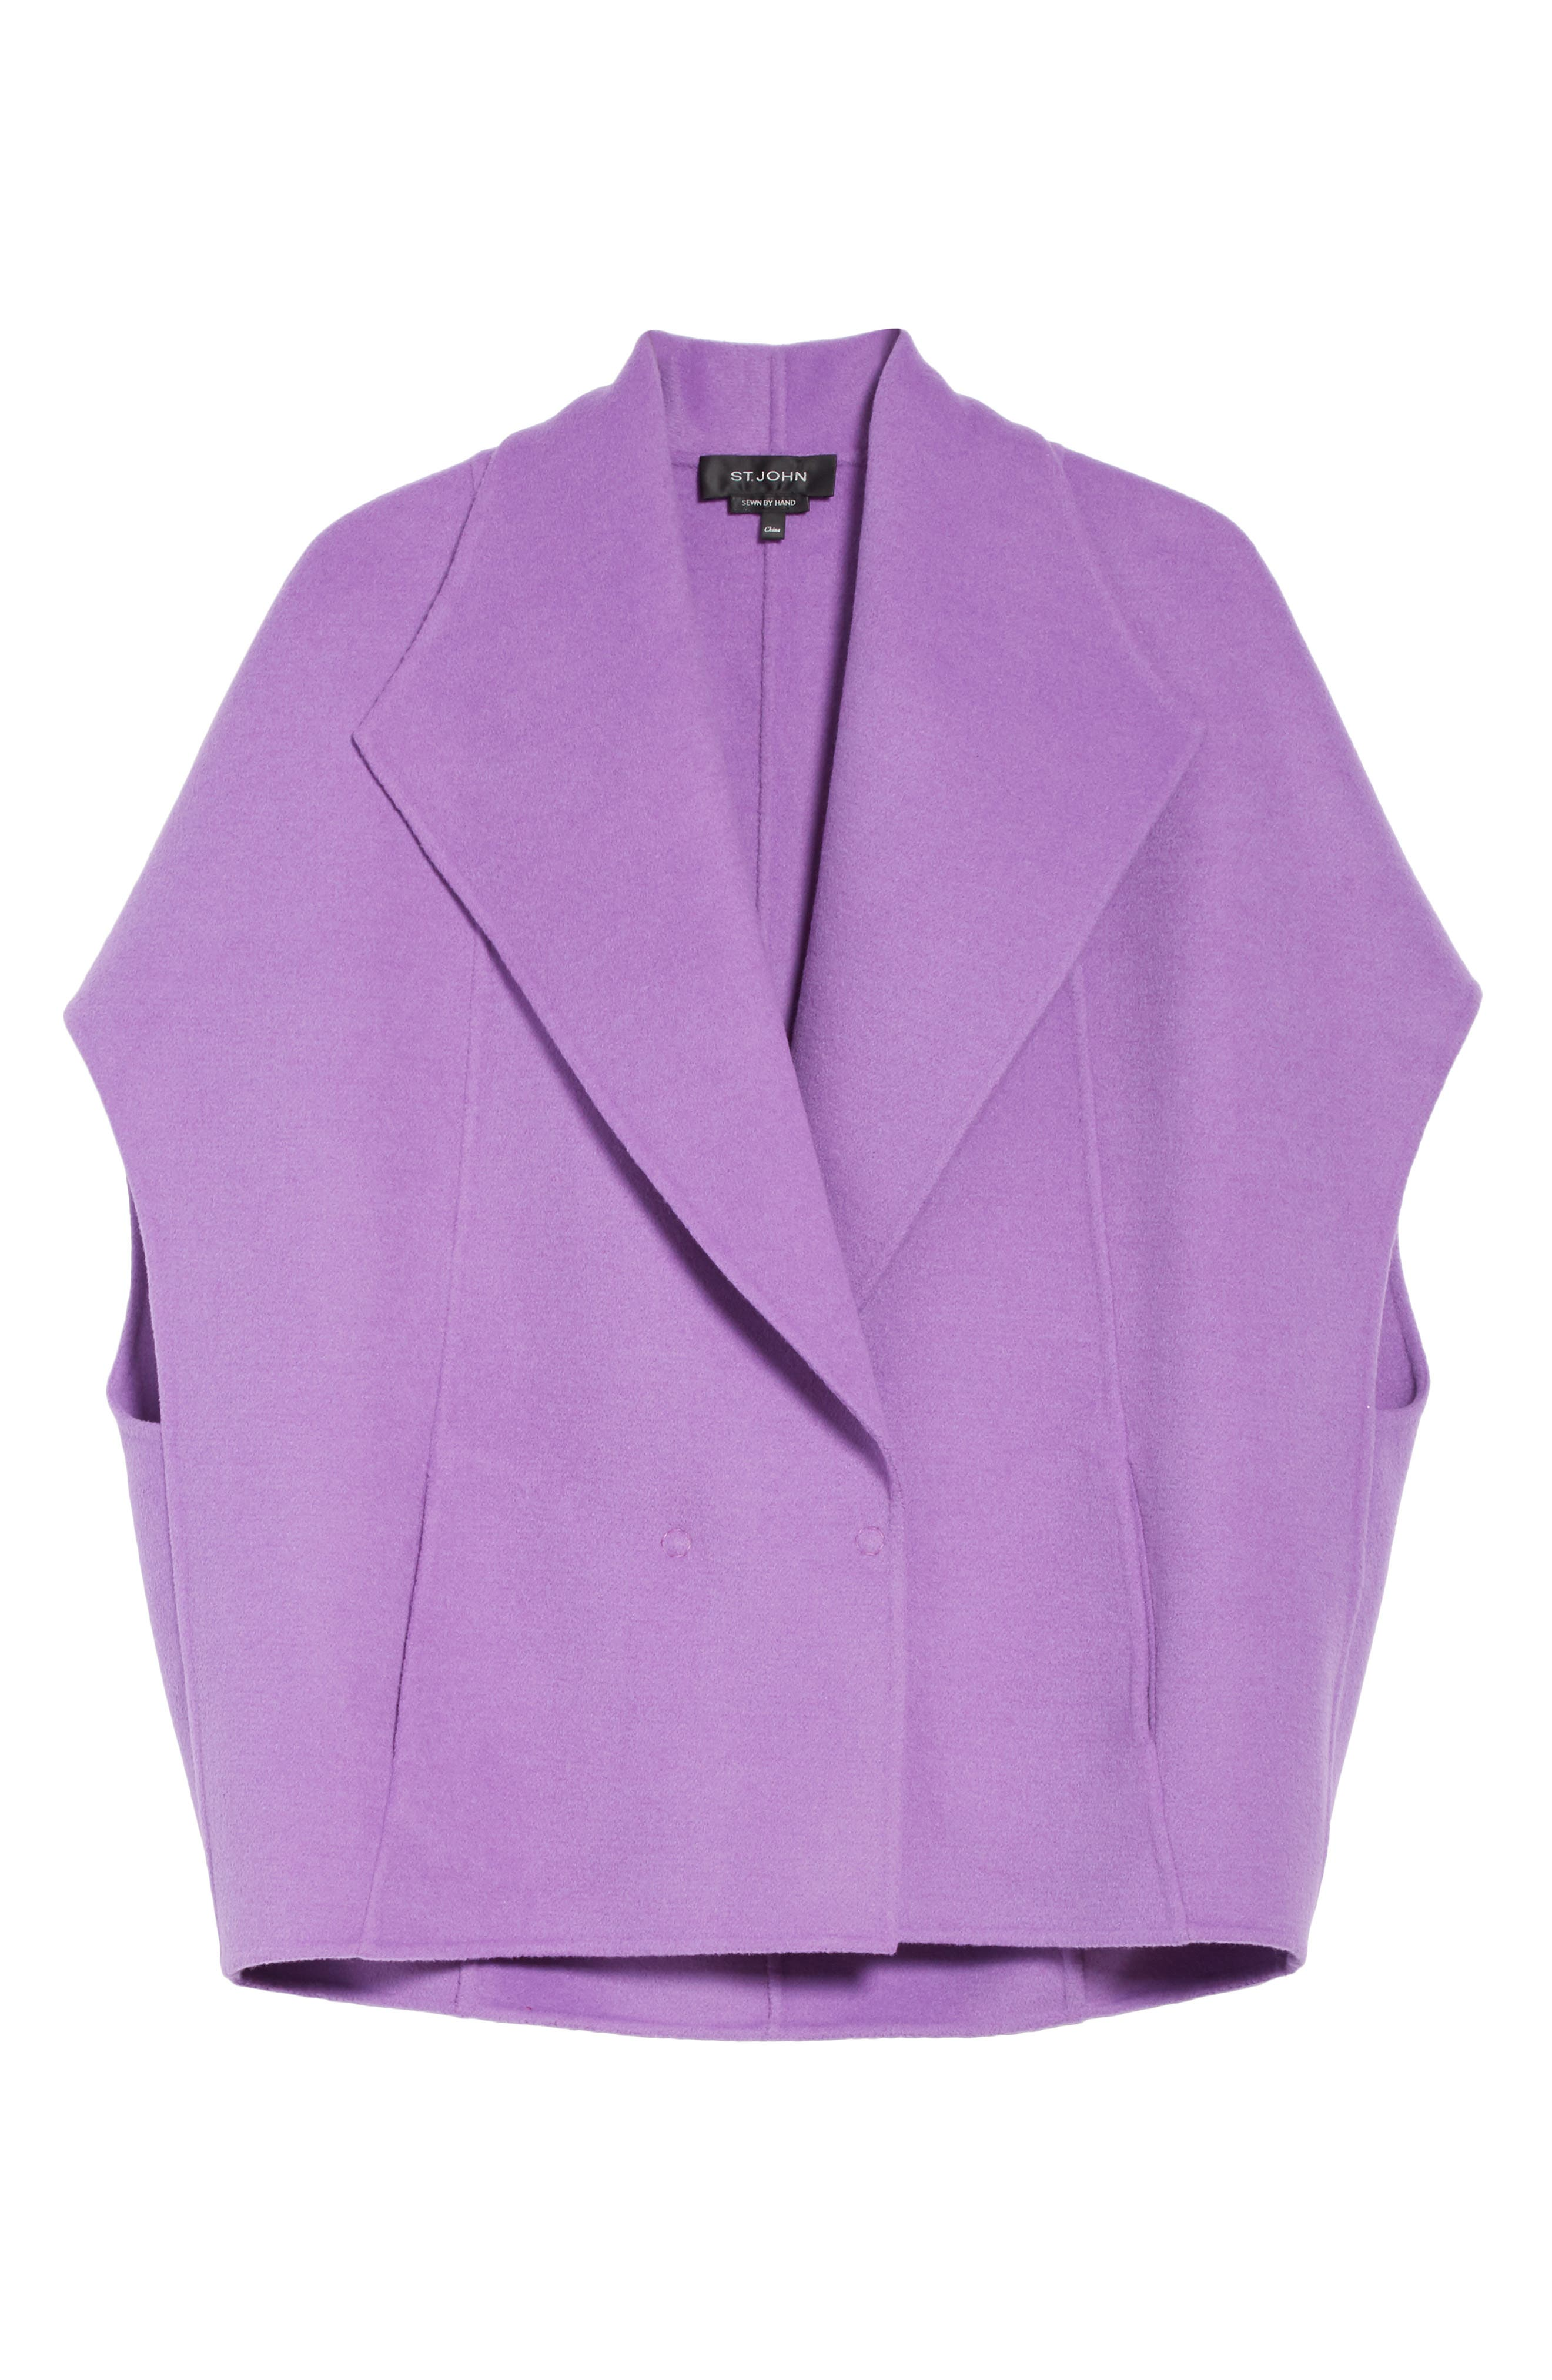 Double Face Wool & Angora Blend Jacket,                             Alternate thumbnail 7, color,                             Dark Orchid